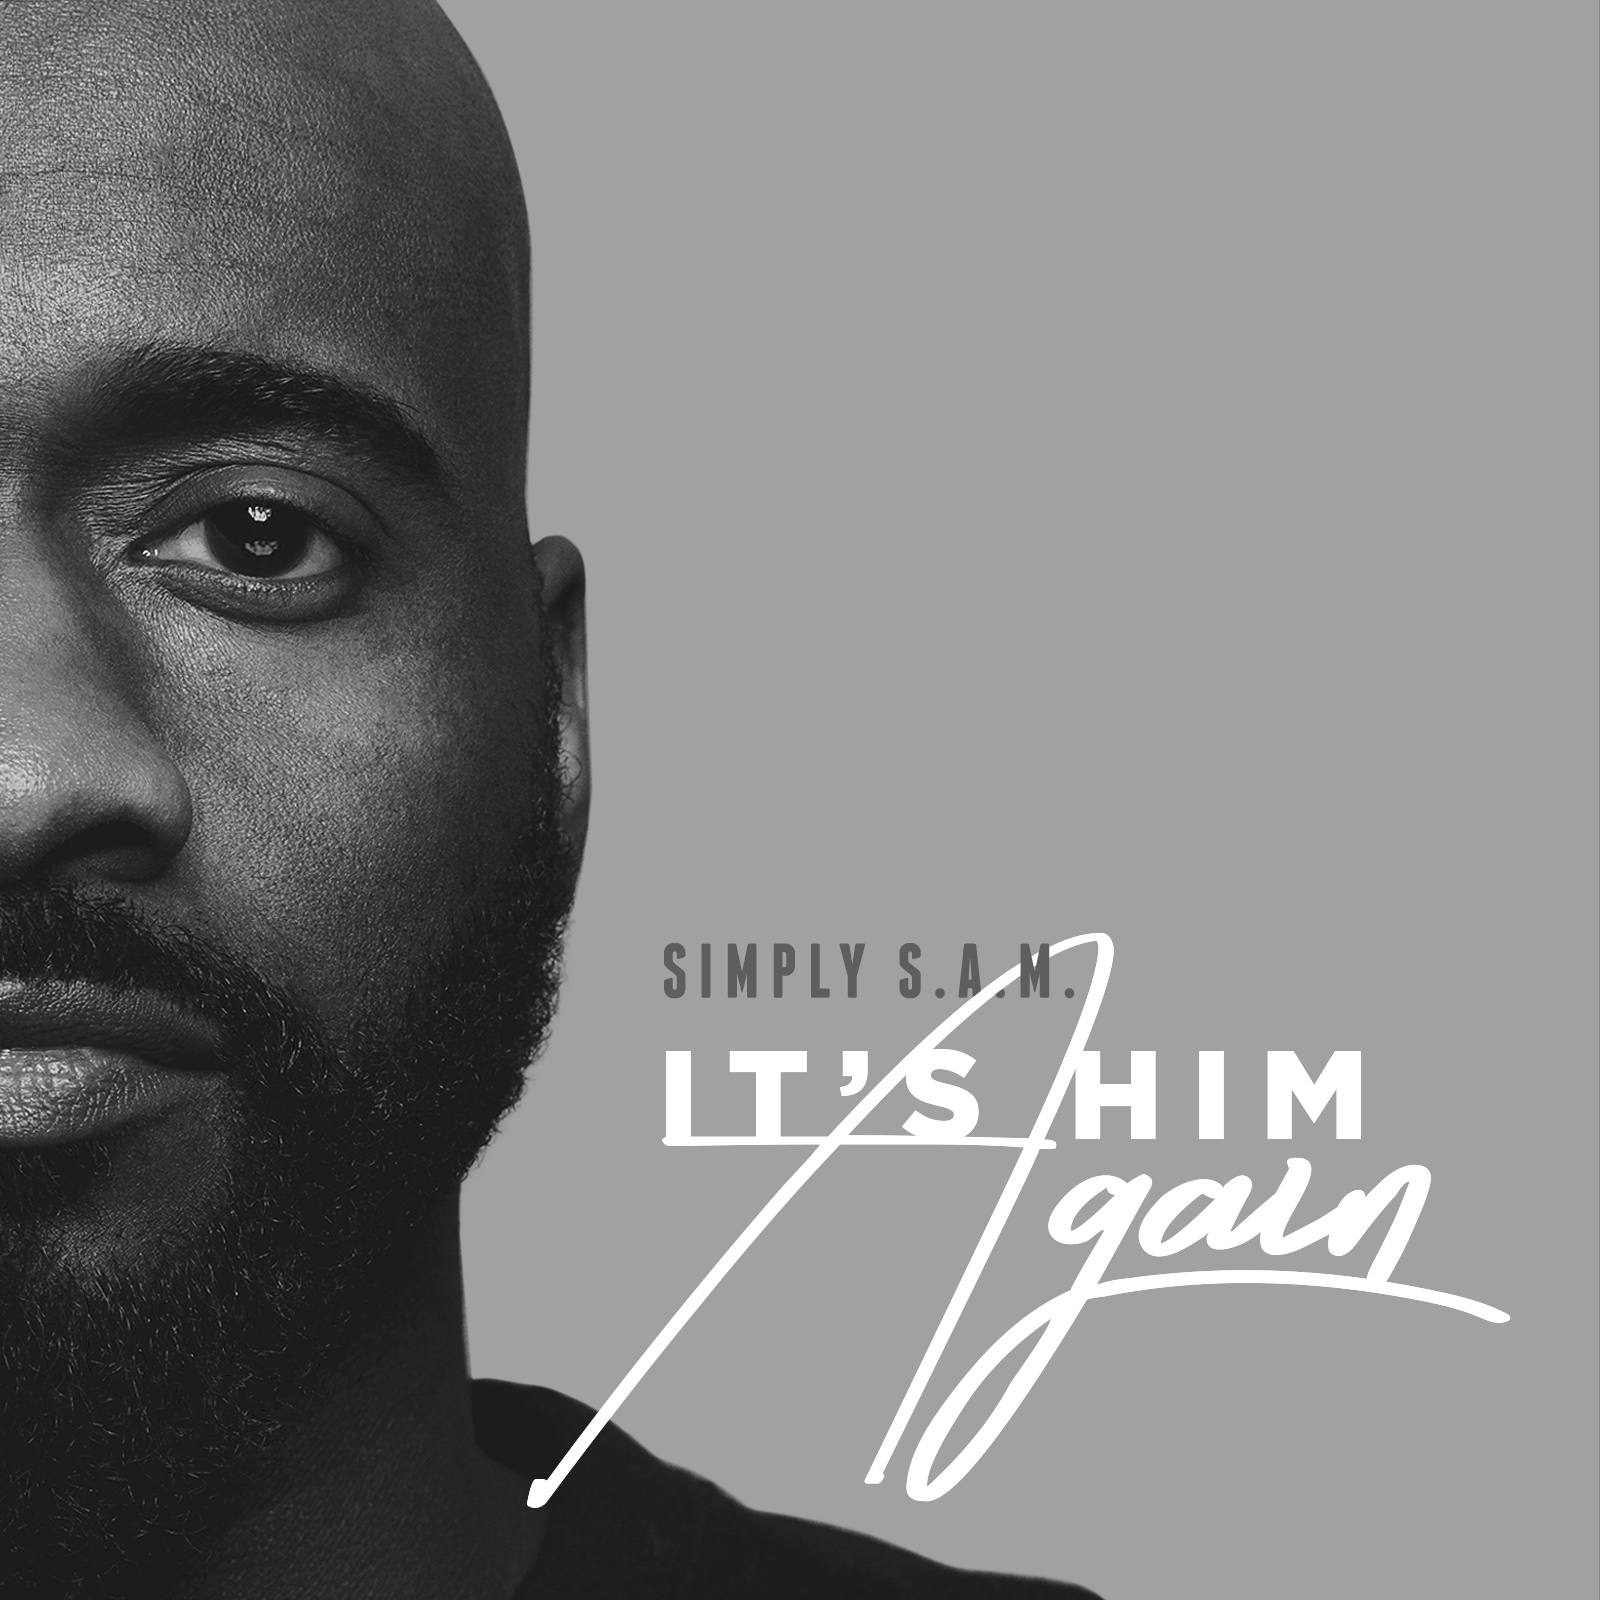 Simply S.A.M. - It's Him Again (EP)